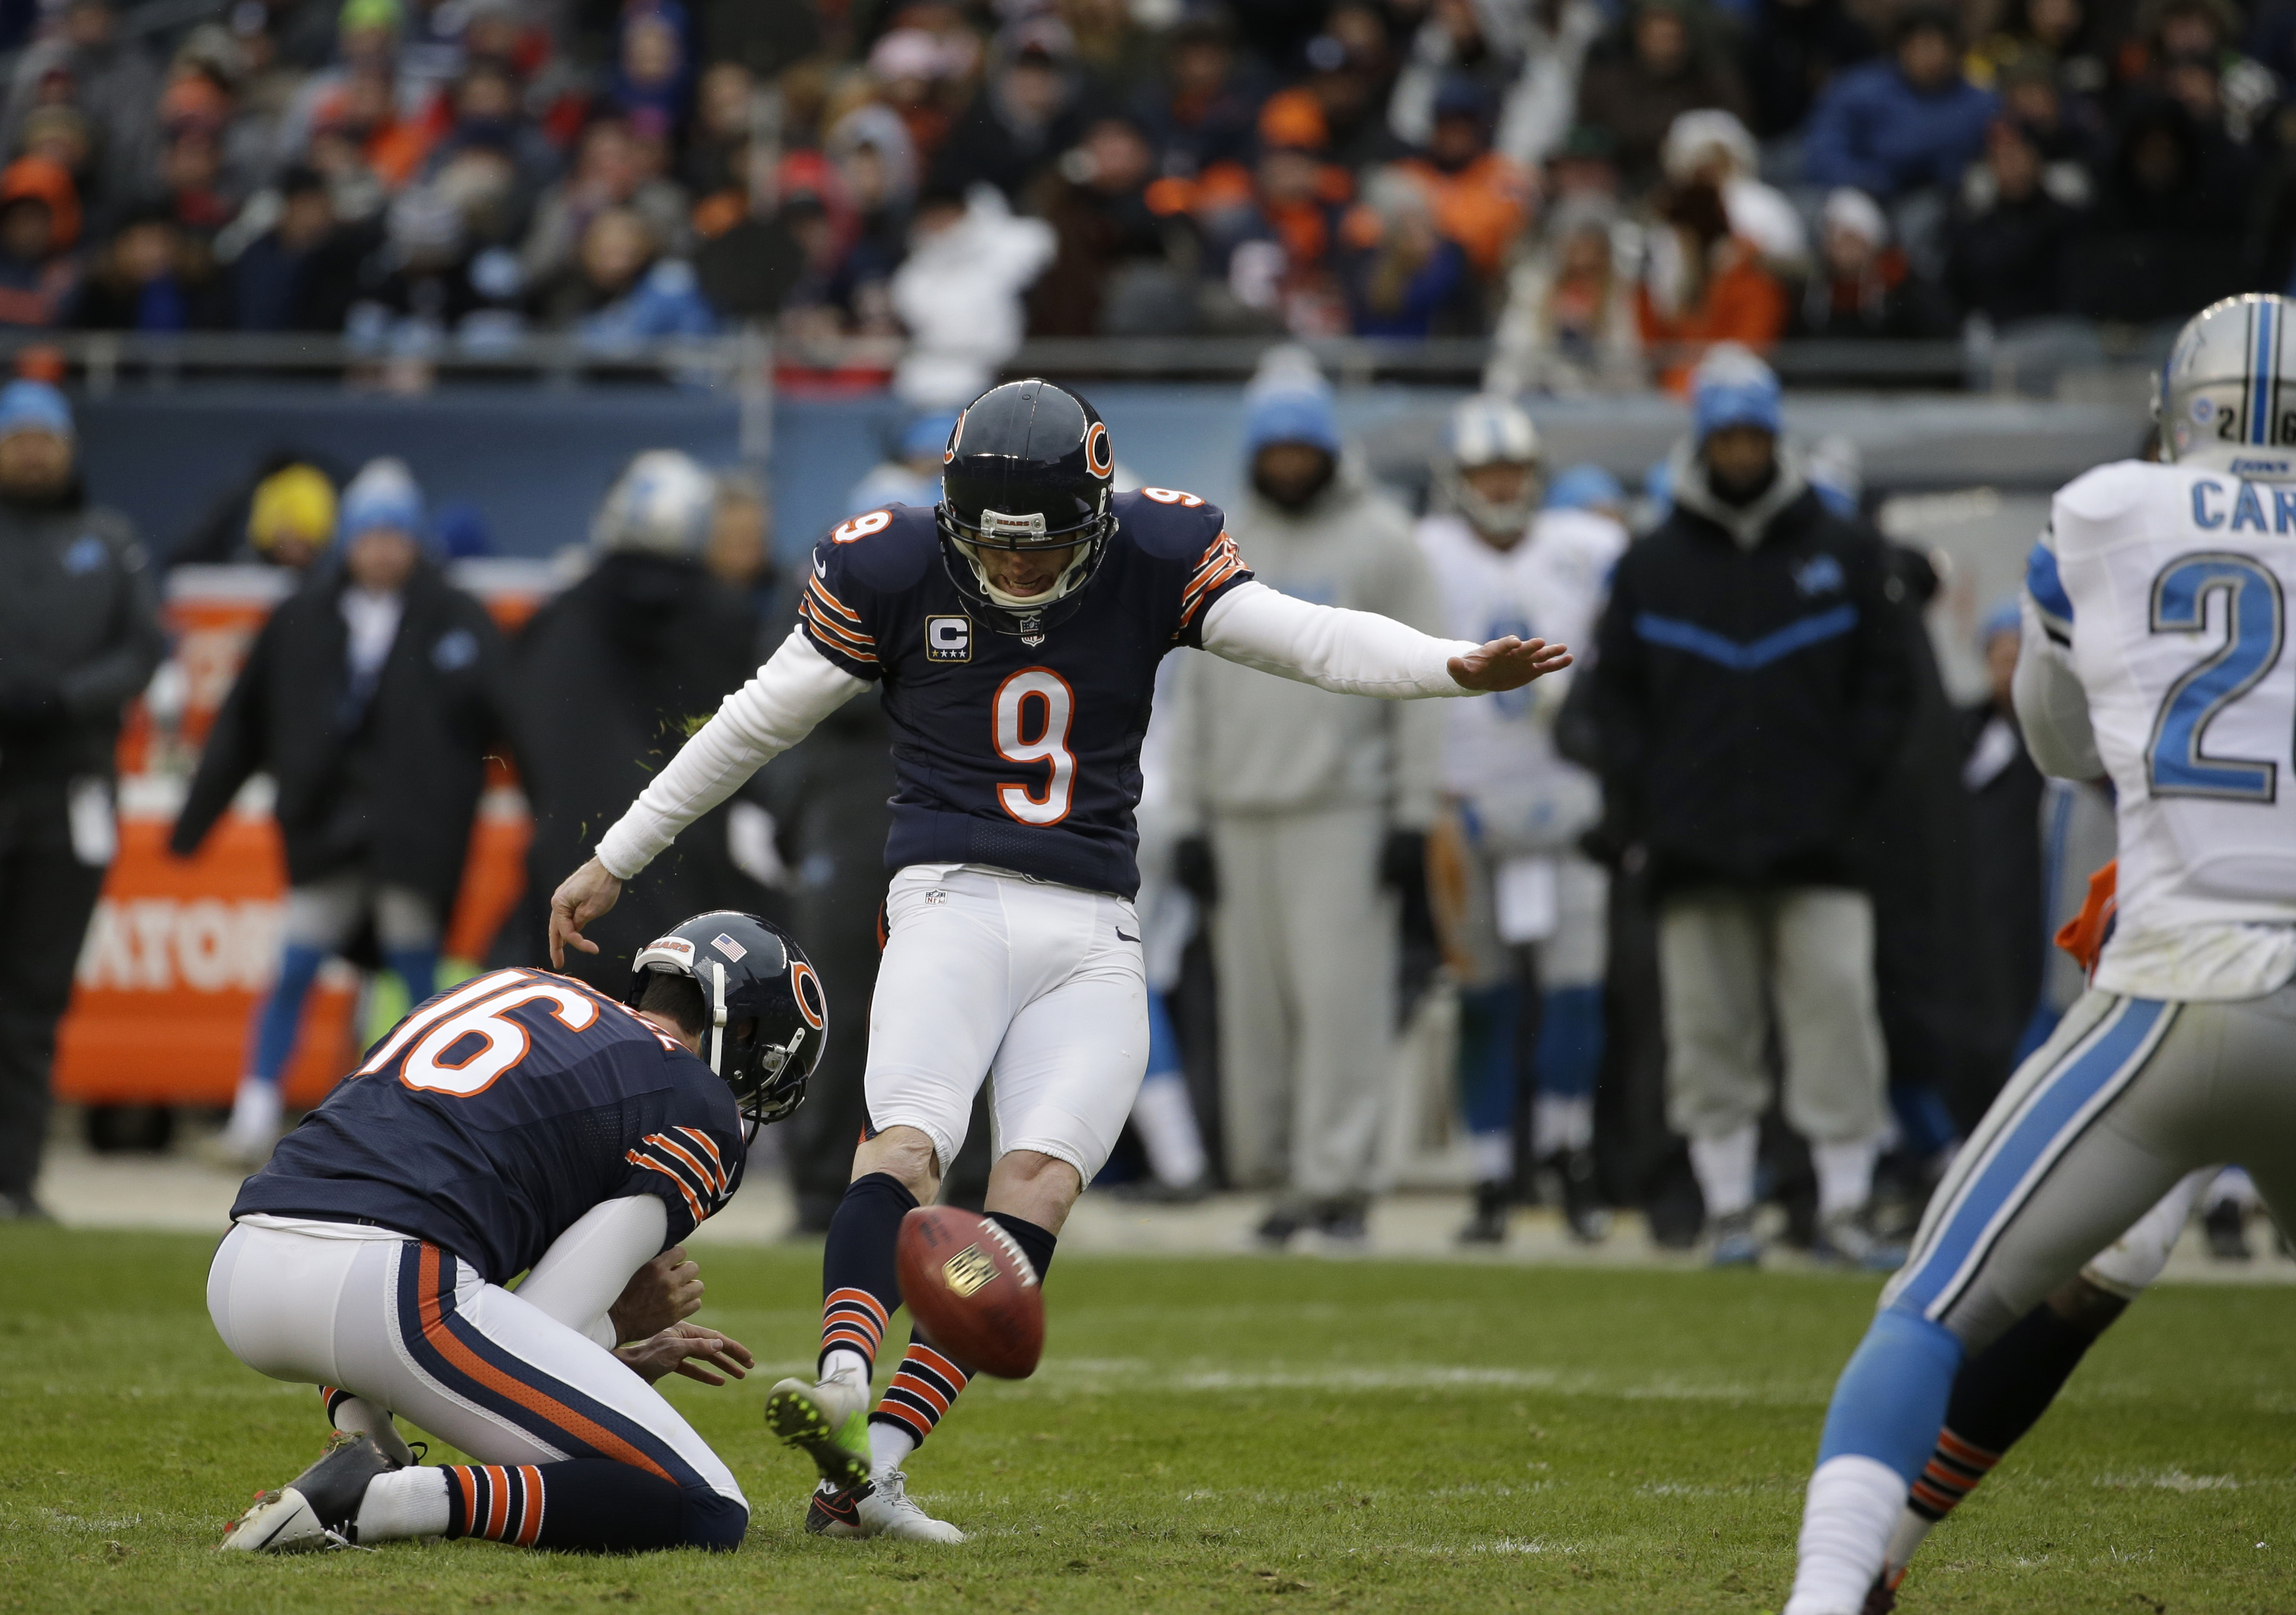 Chicago Bears kicker Robbie Gould (9) scores a field goal during the second half of an NFL football game against the Detroit Lions, Sunday, Jan. 3, 2016, in Chicago. (AP Photo/Nam Y. Huh)